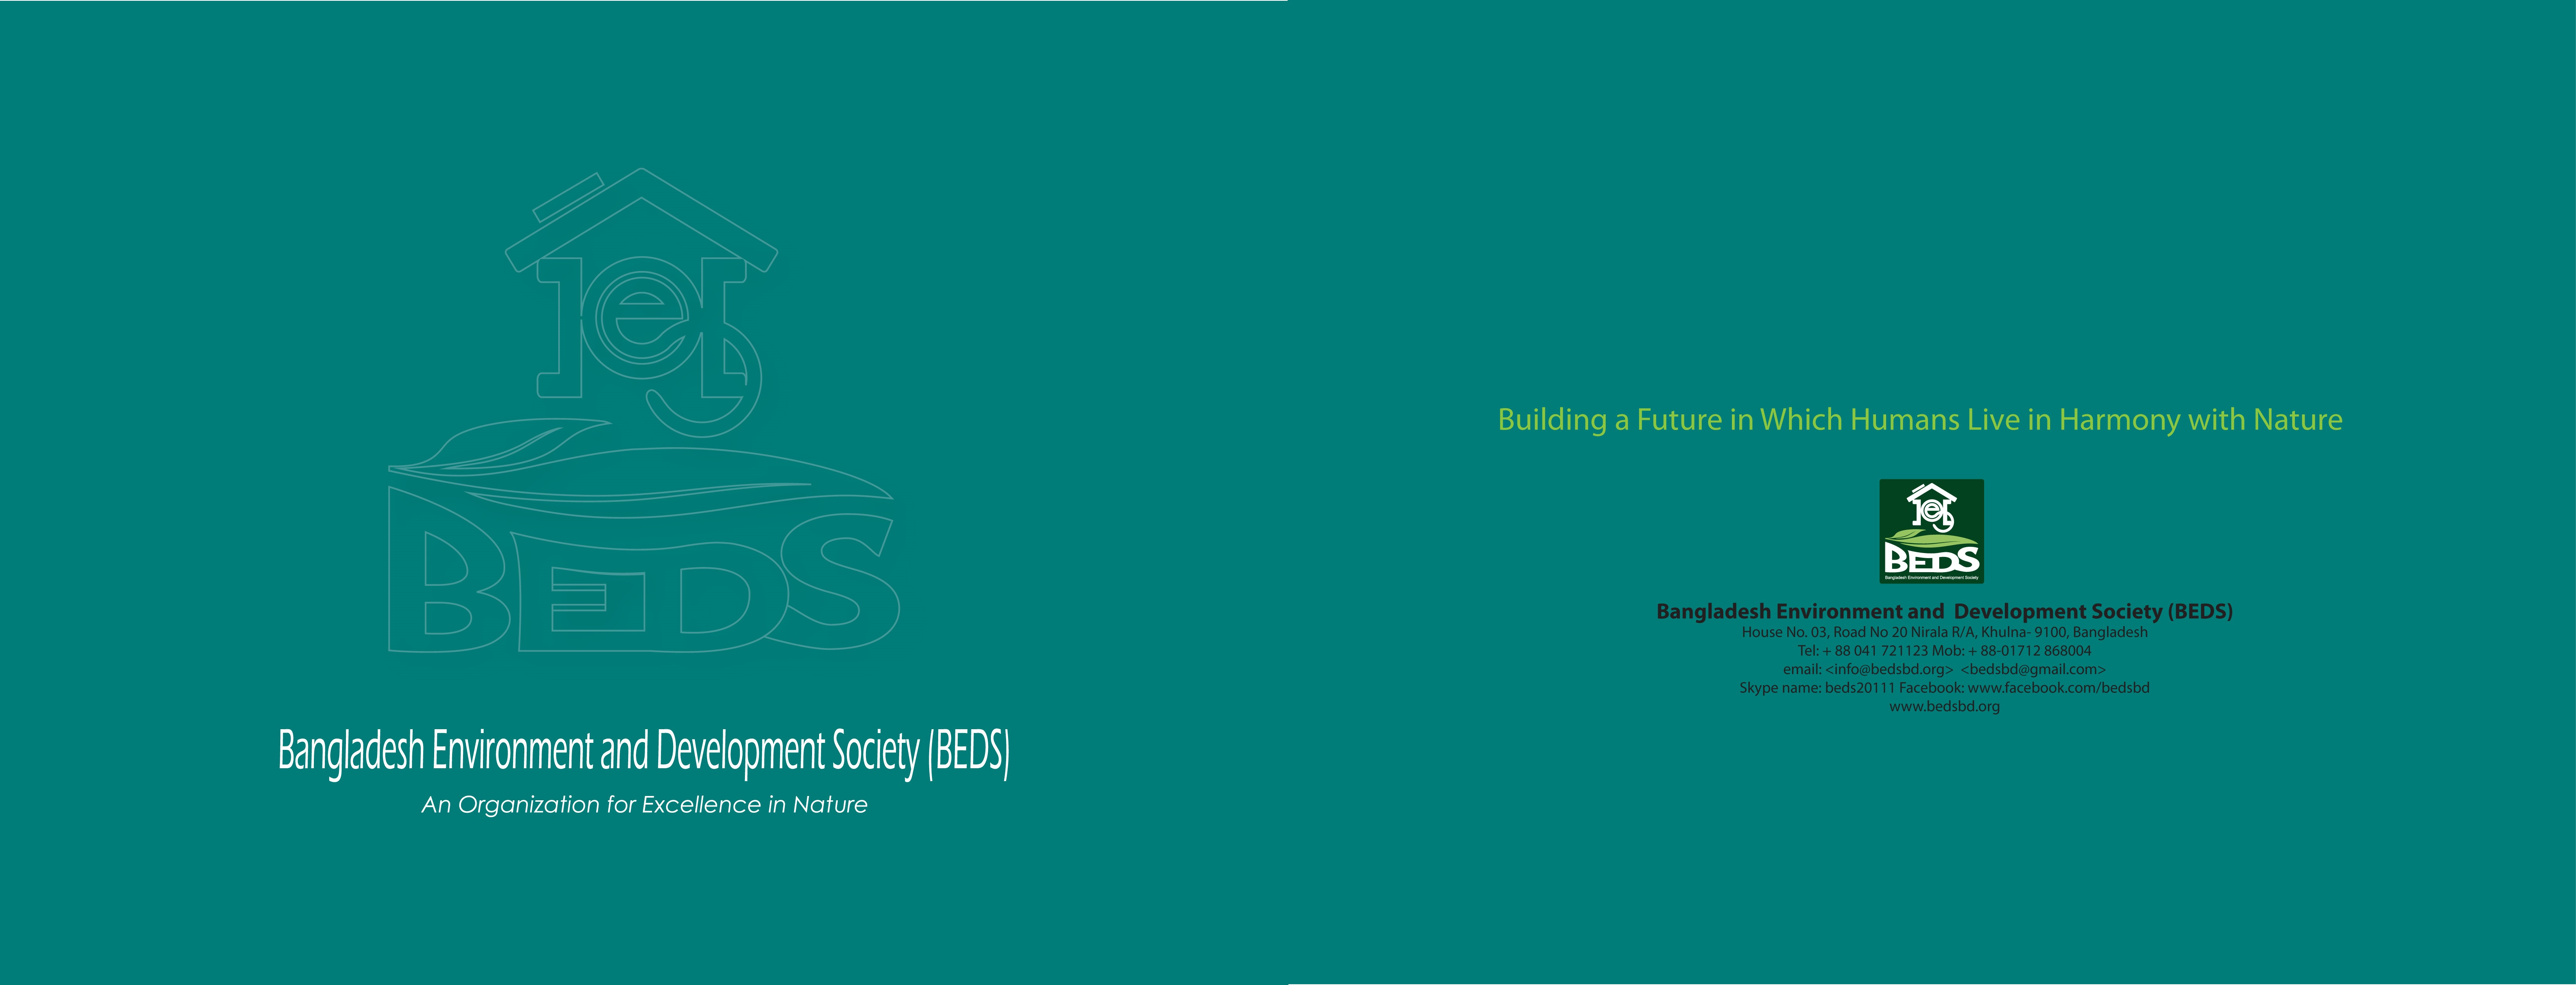 Beds Annual Reports Three